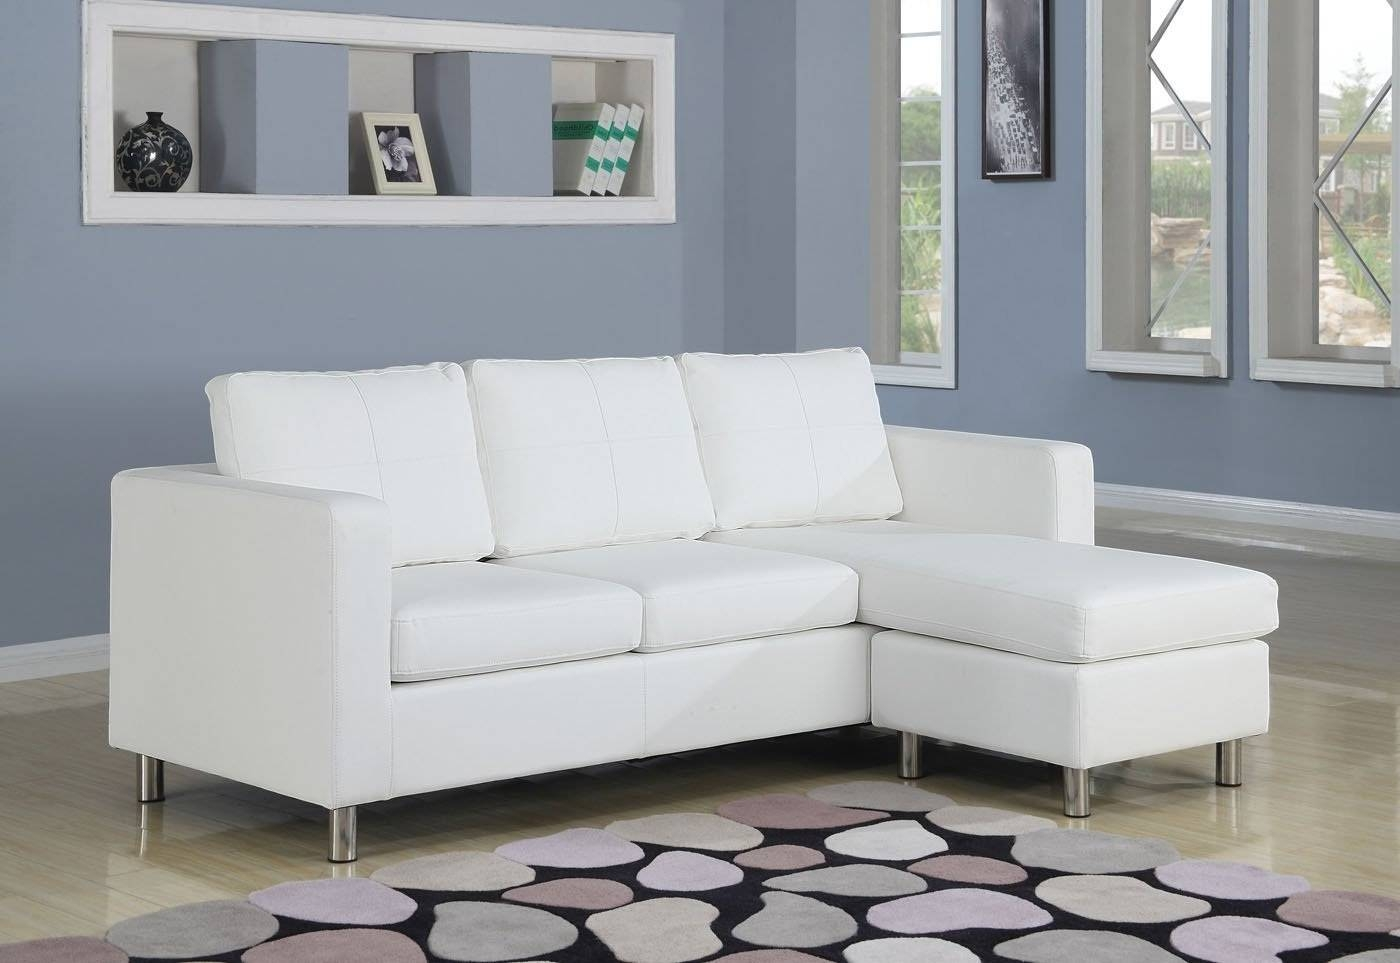 Sofas Center : Cheap Small Sectional Sofas With Chaise For Spaces with Small Sectional Sofas for Small Spaces (Image 24 of 25)